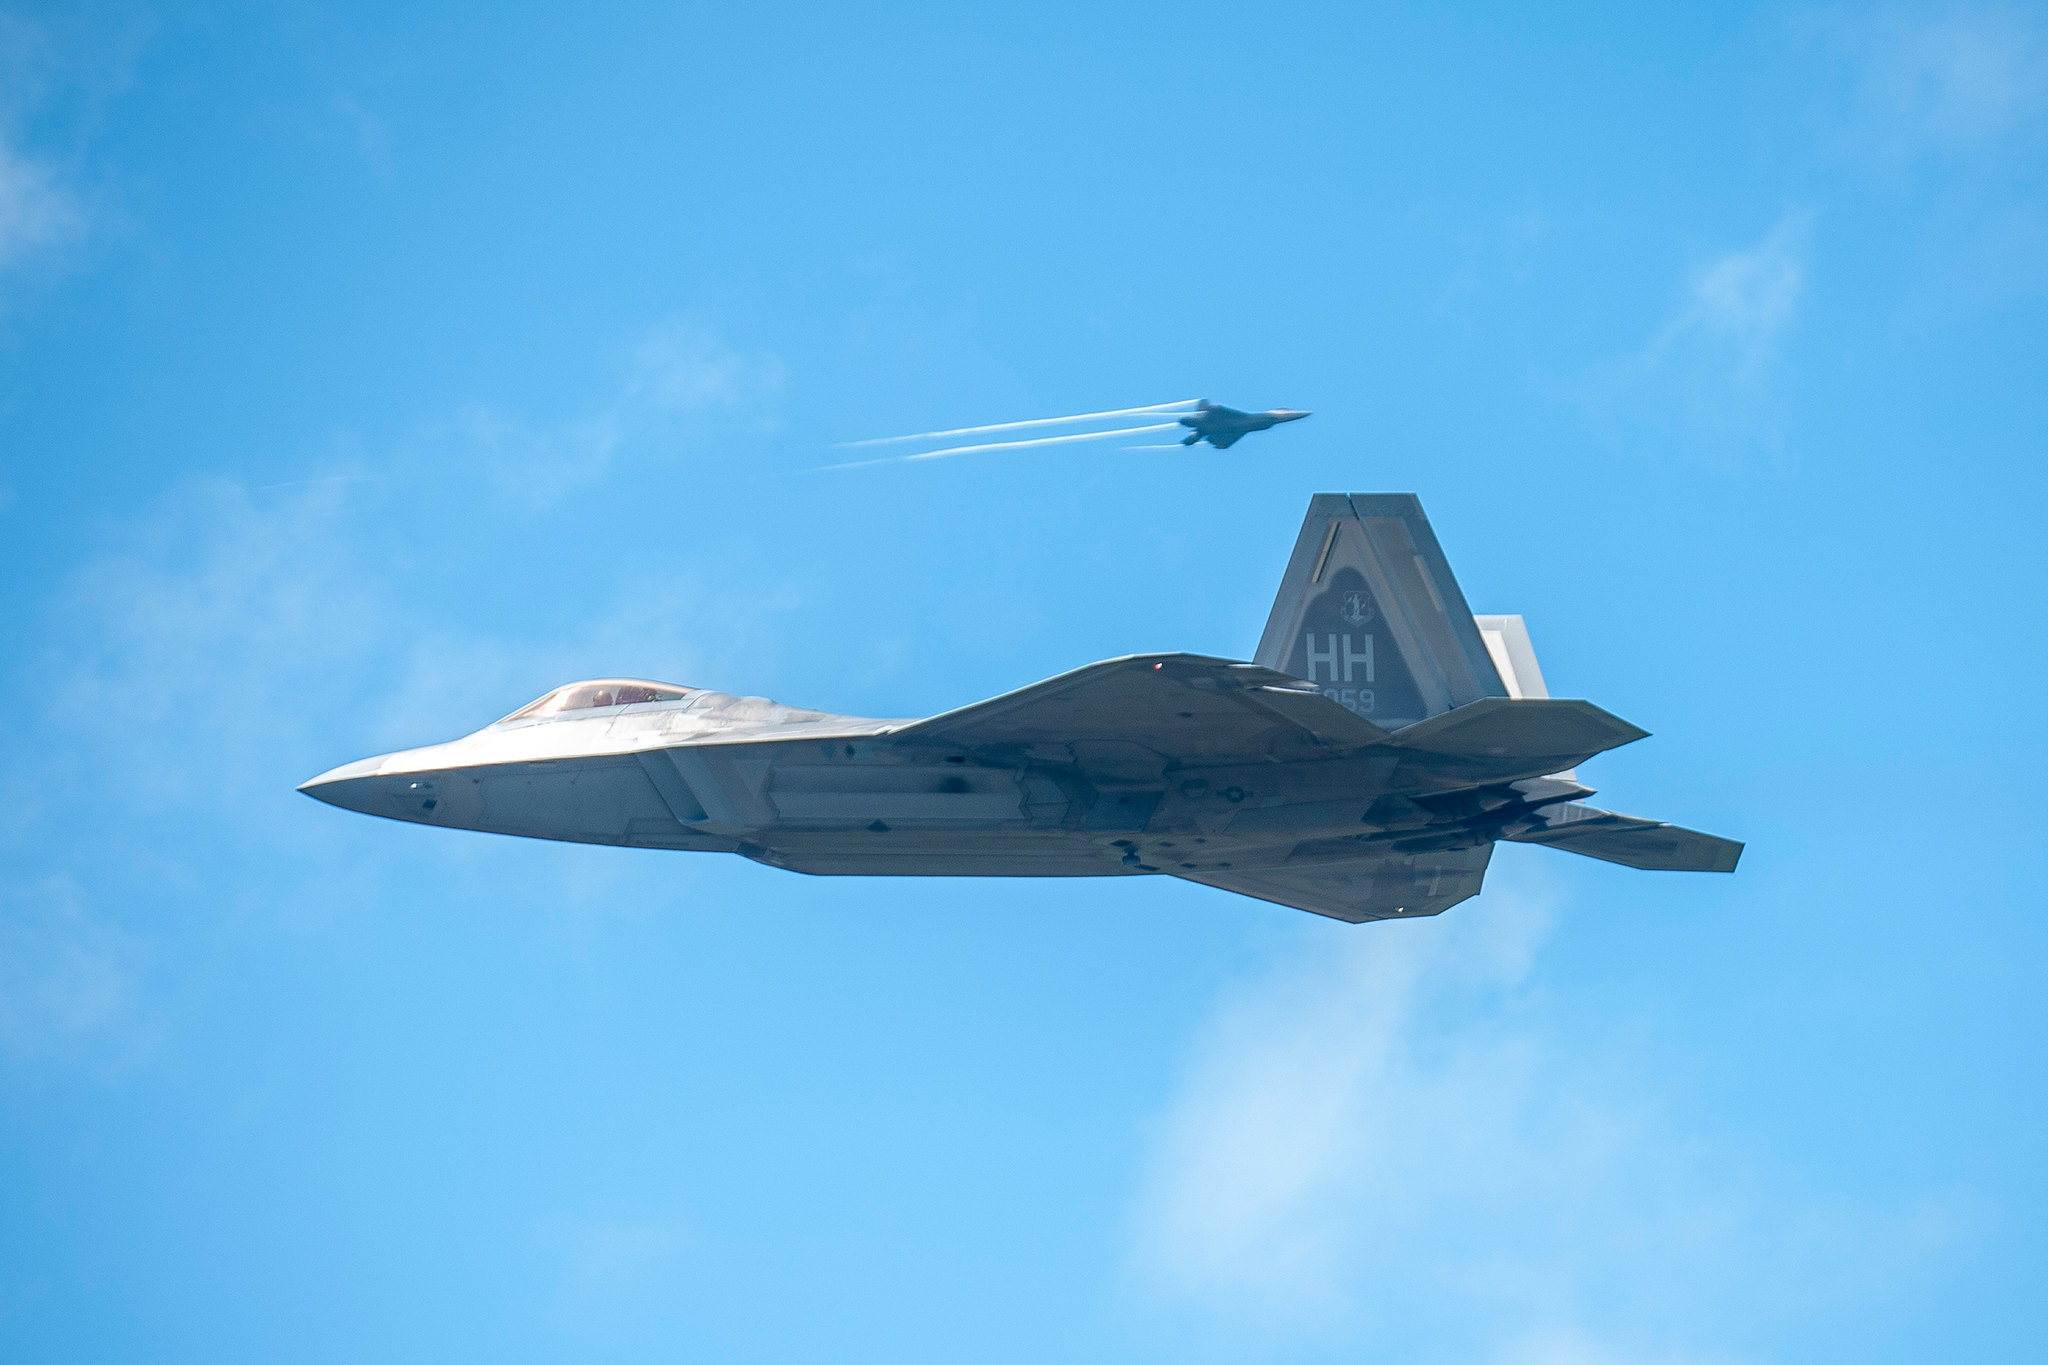 Hawaii Air National Guard F-22 Raptors from Joint Base Pearl Harbor-Hickam practice low approaches April 25, 2019, at the Palau International Airport, Republic of Palau. The fifth-generation-fighter aircraft landed in Palau for the first time as part of Resilient Typhoon, a Pacific Air Forces aircraft dispersal exercise. (Senior Airman John Linzmeier/Air National Guard)